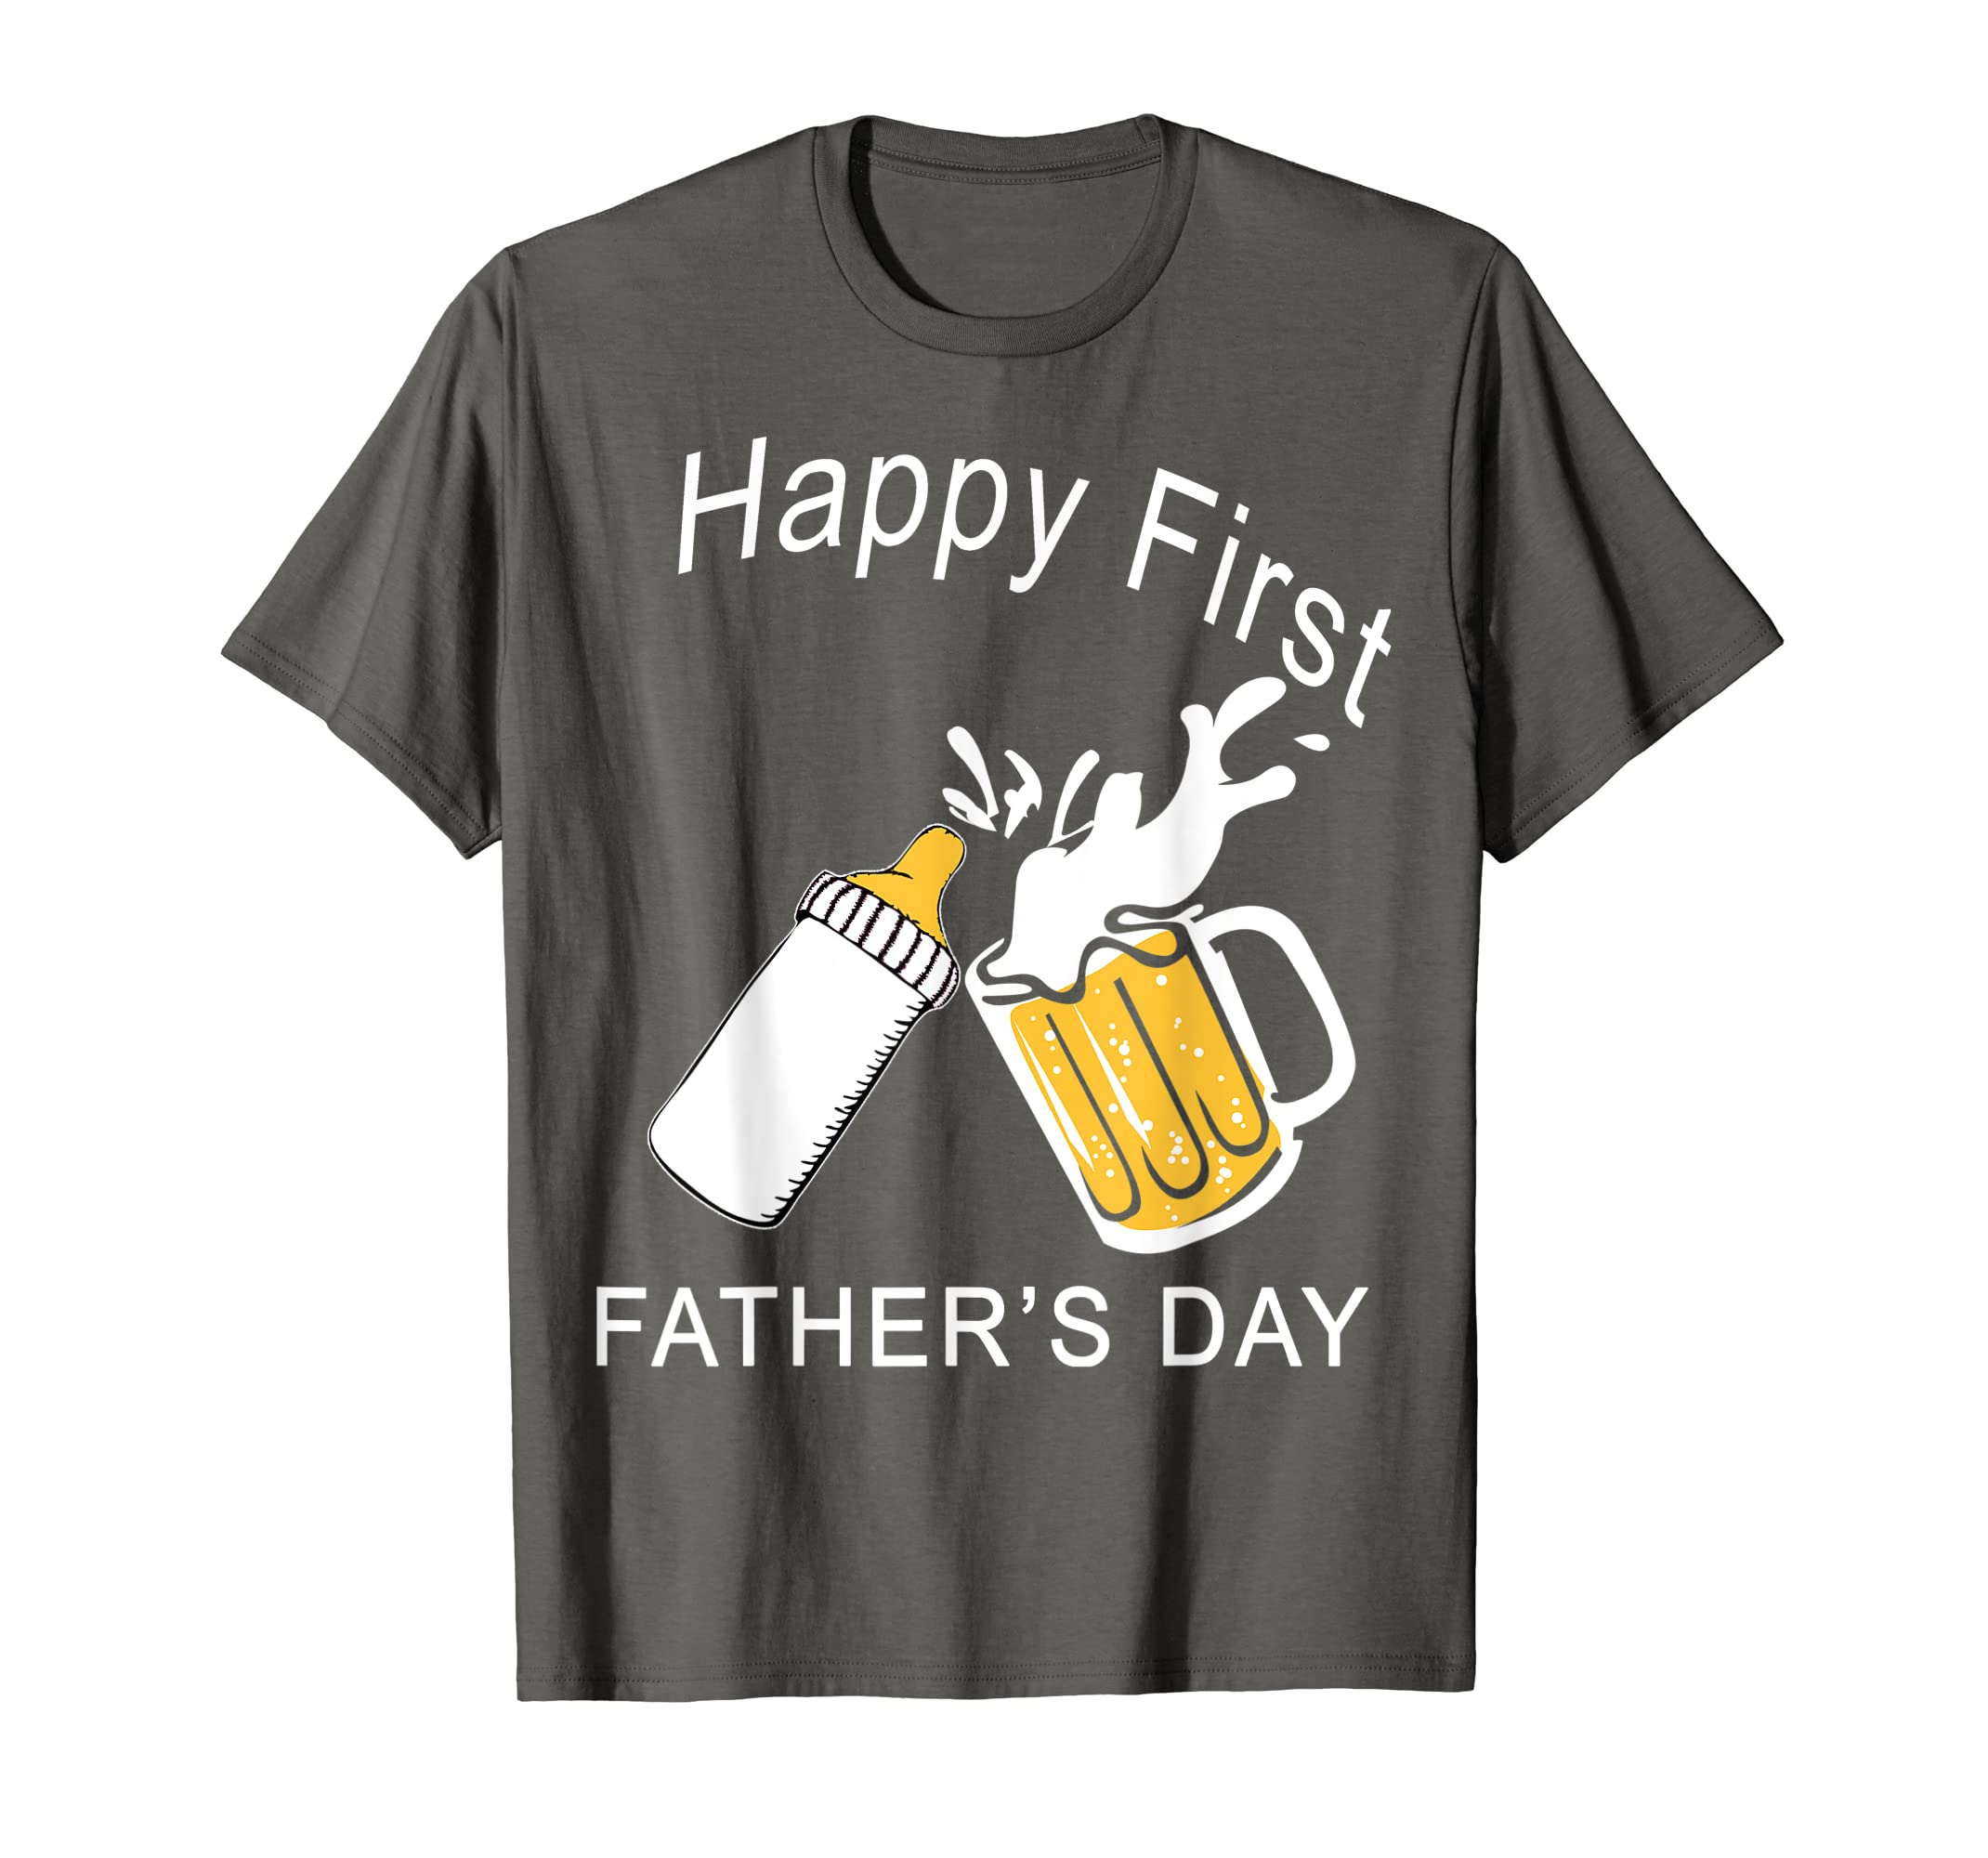 15ccf346 Amazon.com: HAPPY FIRST FATHER'S DAY Shirt Father's Day Gift T Shirt:  Clothing